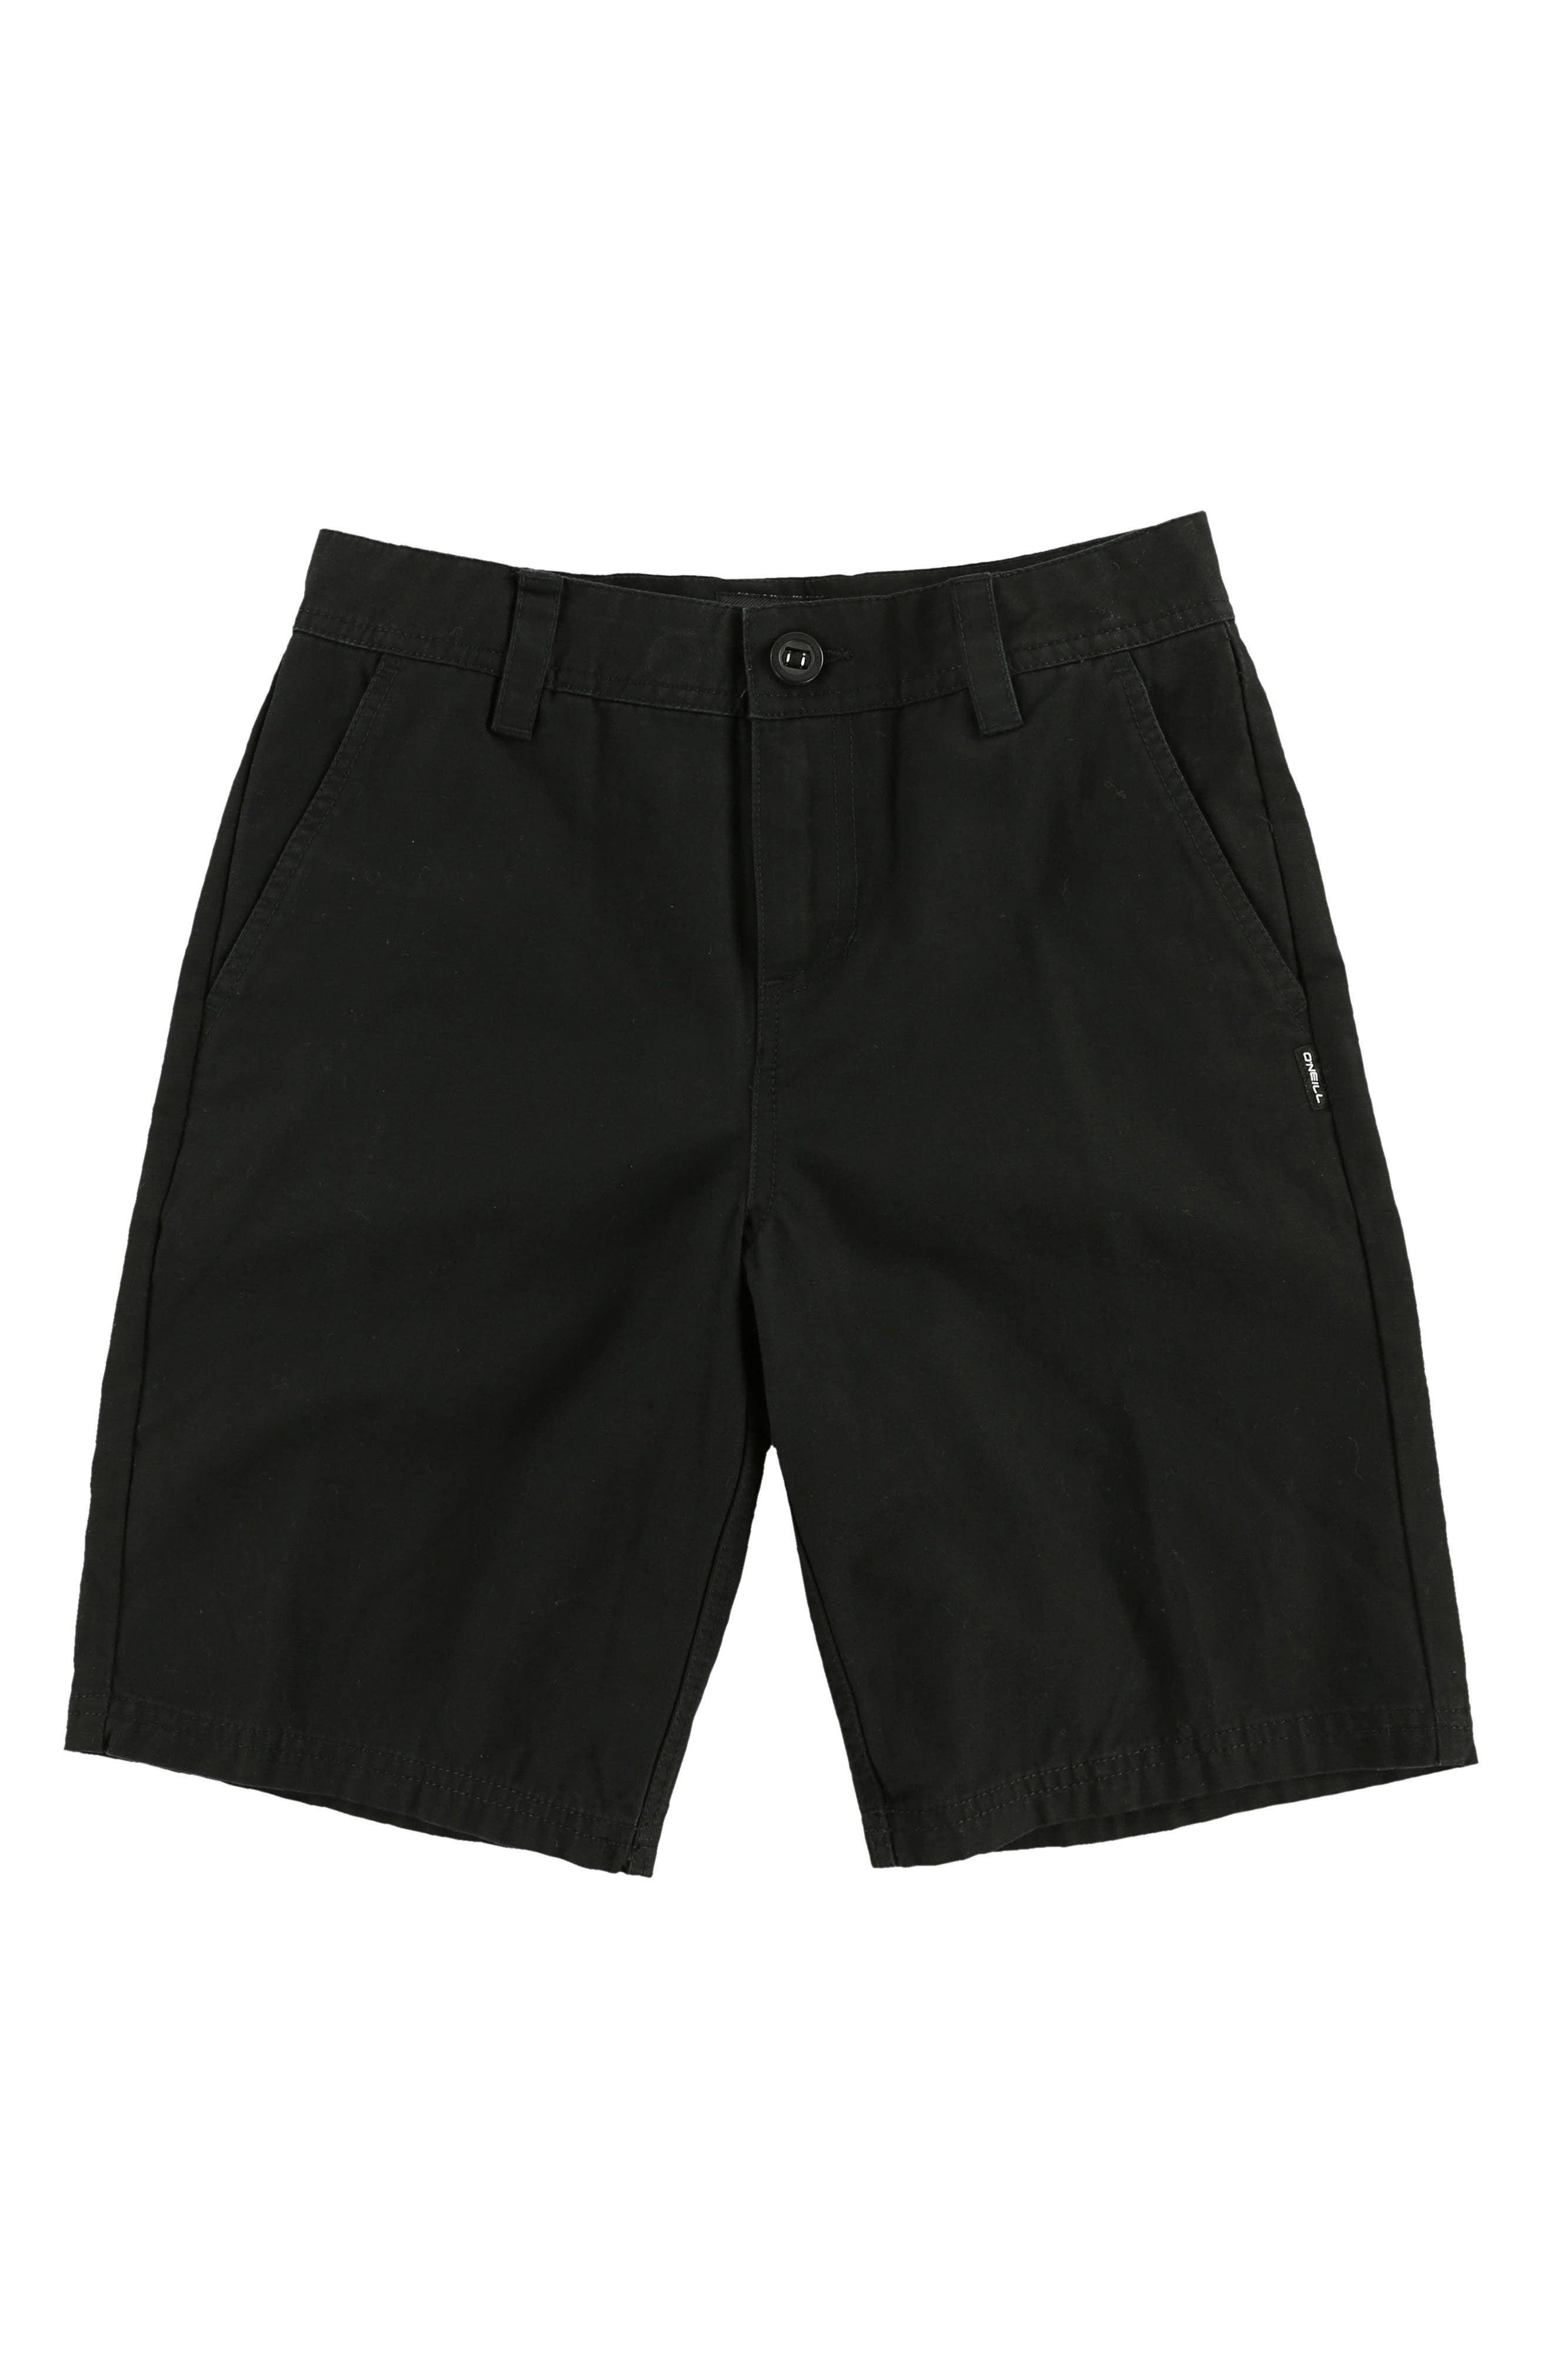 Jay Chino Shorts,                         Main,                         color, 001